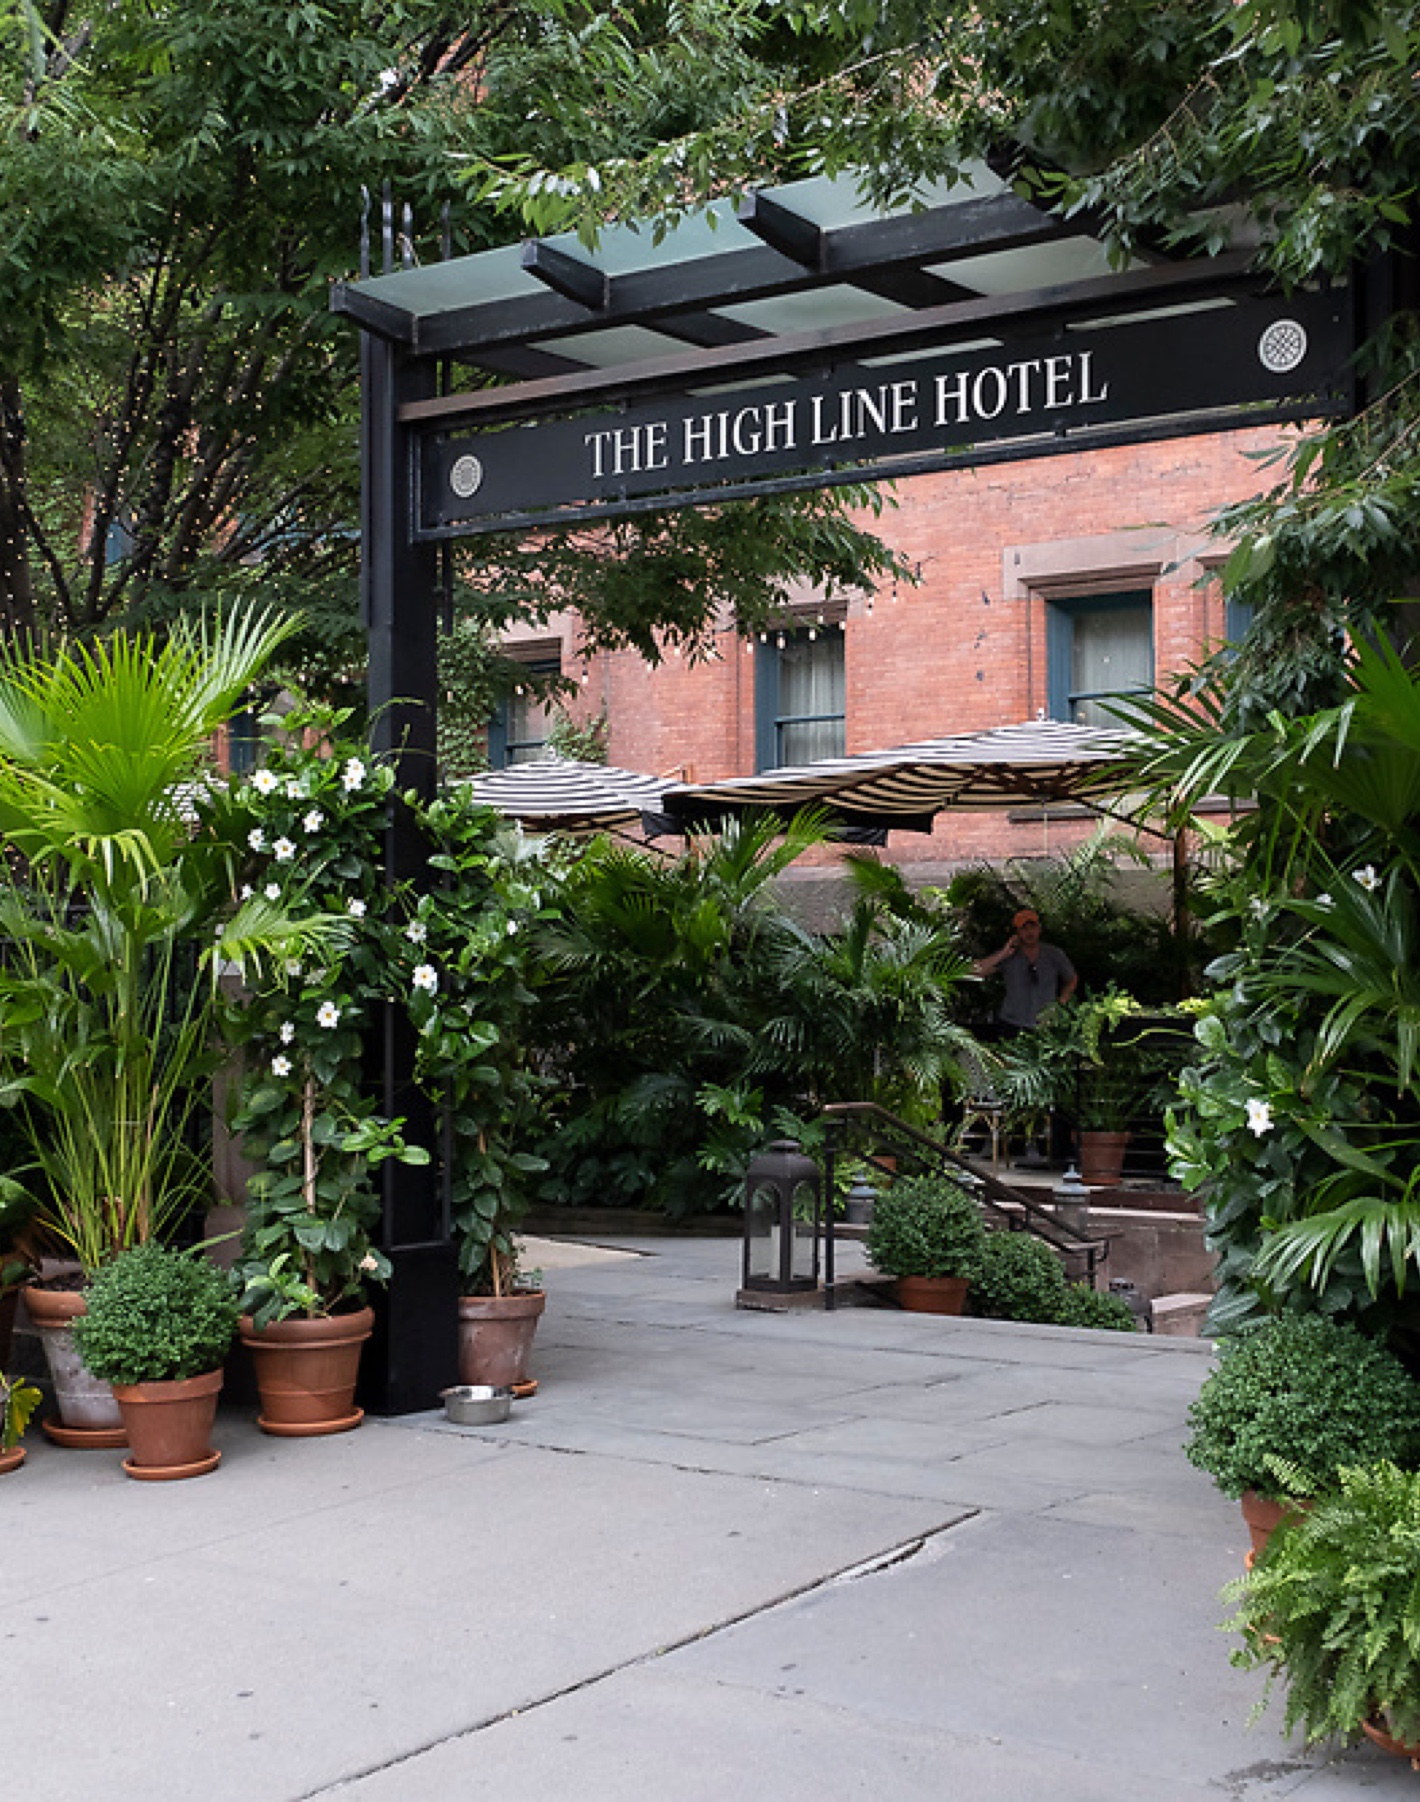 the high line hotel near 532 W 20 condos in west chelsea